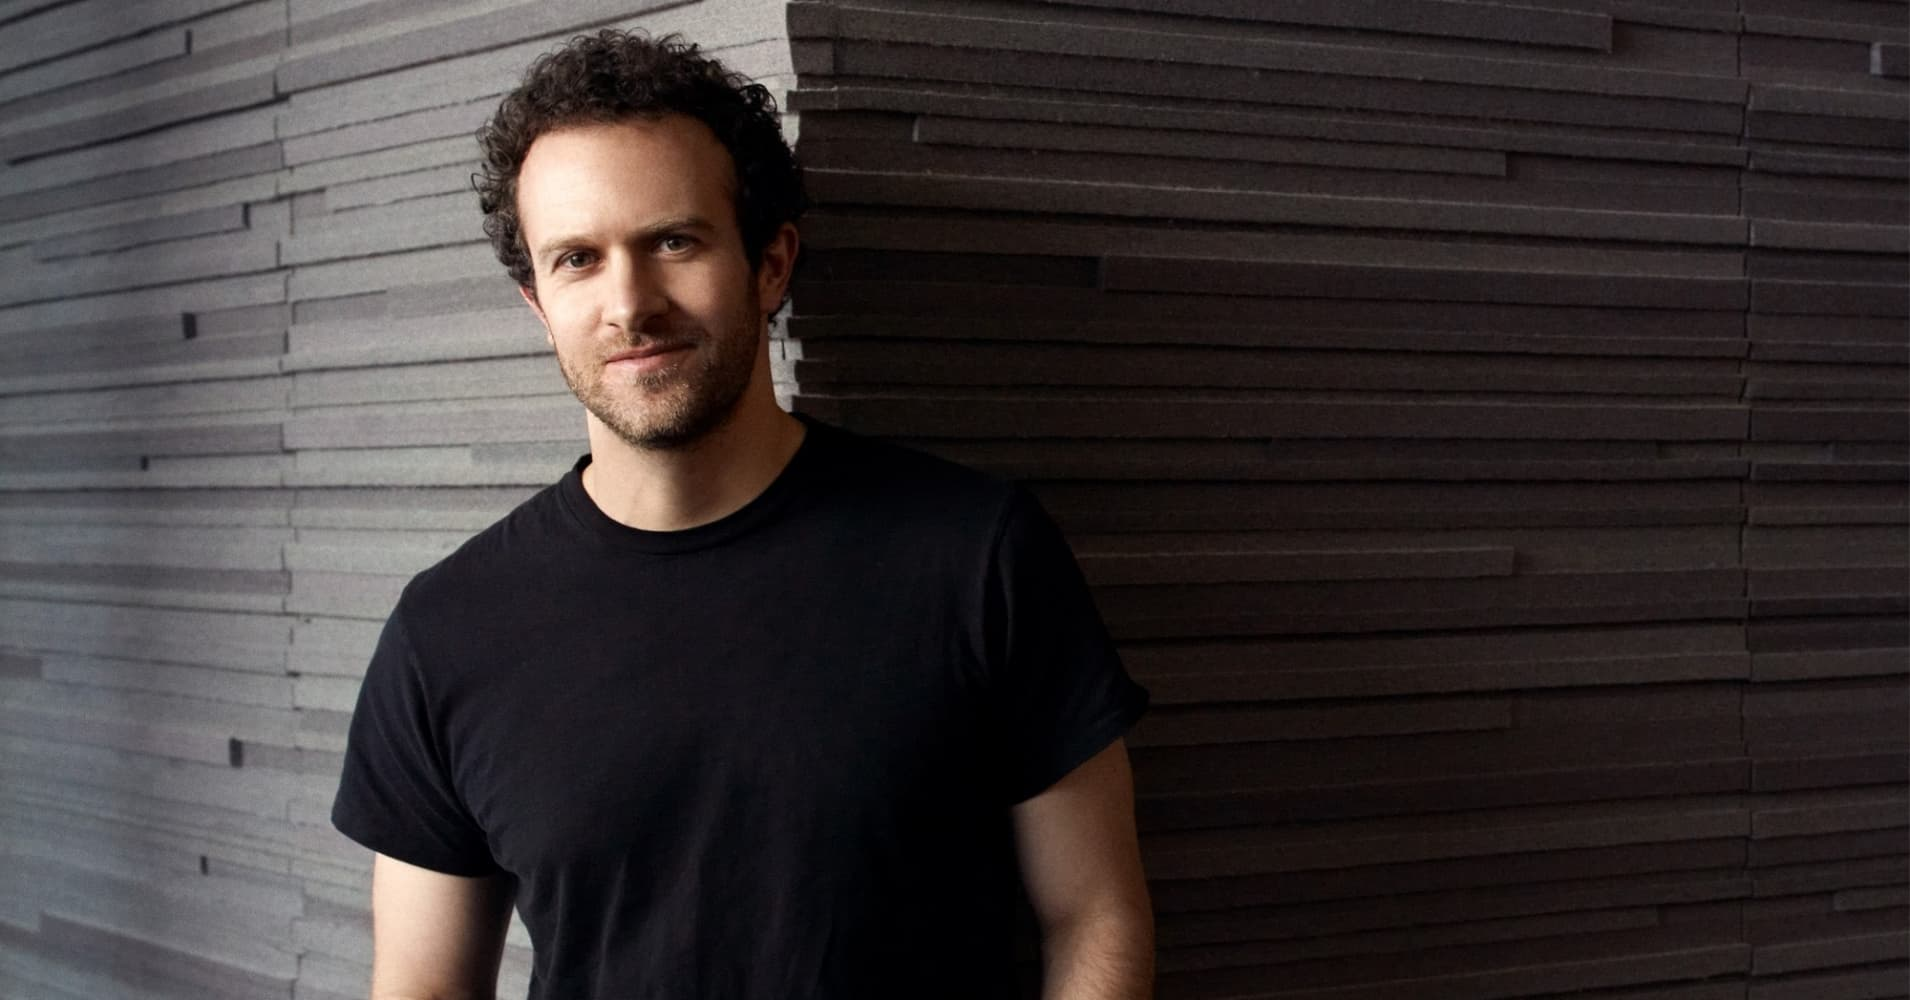 Jason Fried, the Co-Founder and CEO at Basecamp